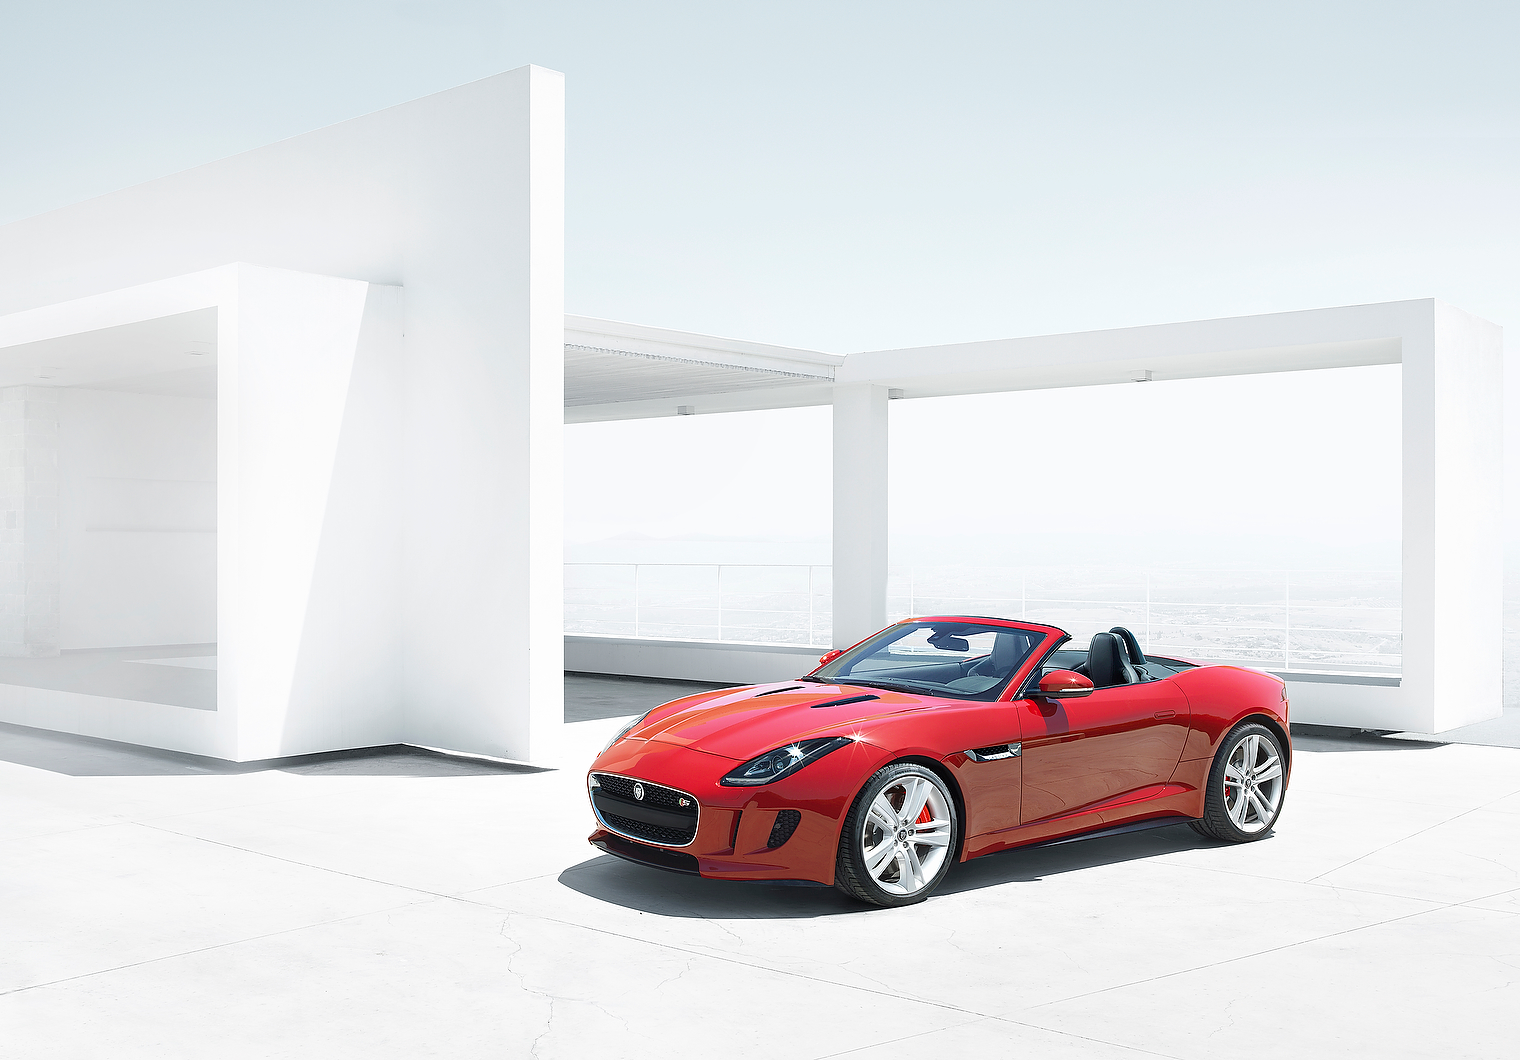 http://images.cdn.autocar.co.uk/sites/autocar.co.uk/files/jaguar-f-type1.jpg